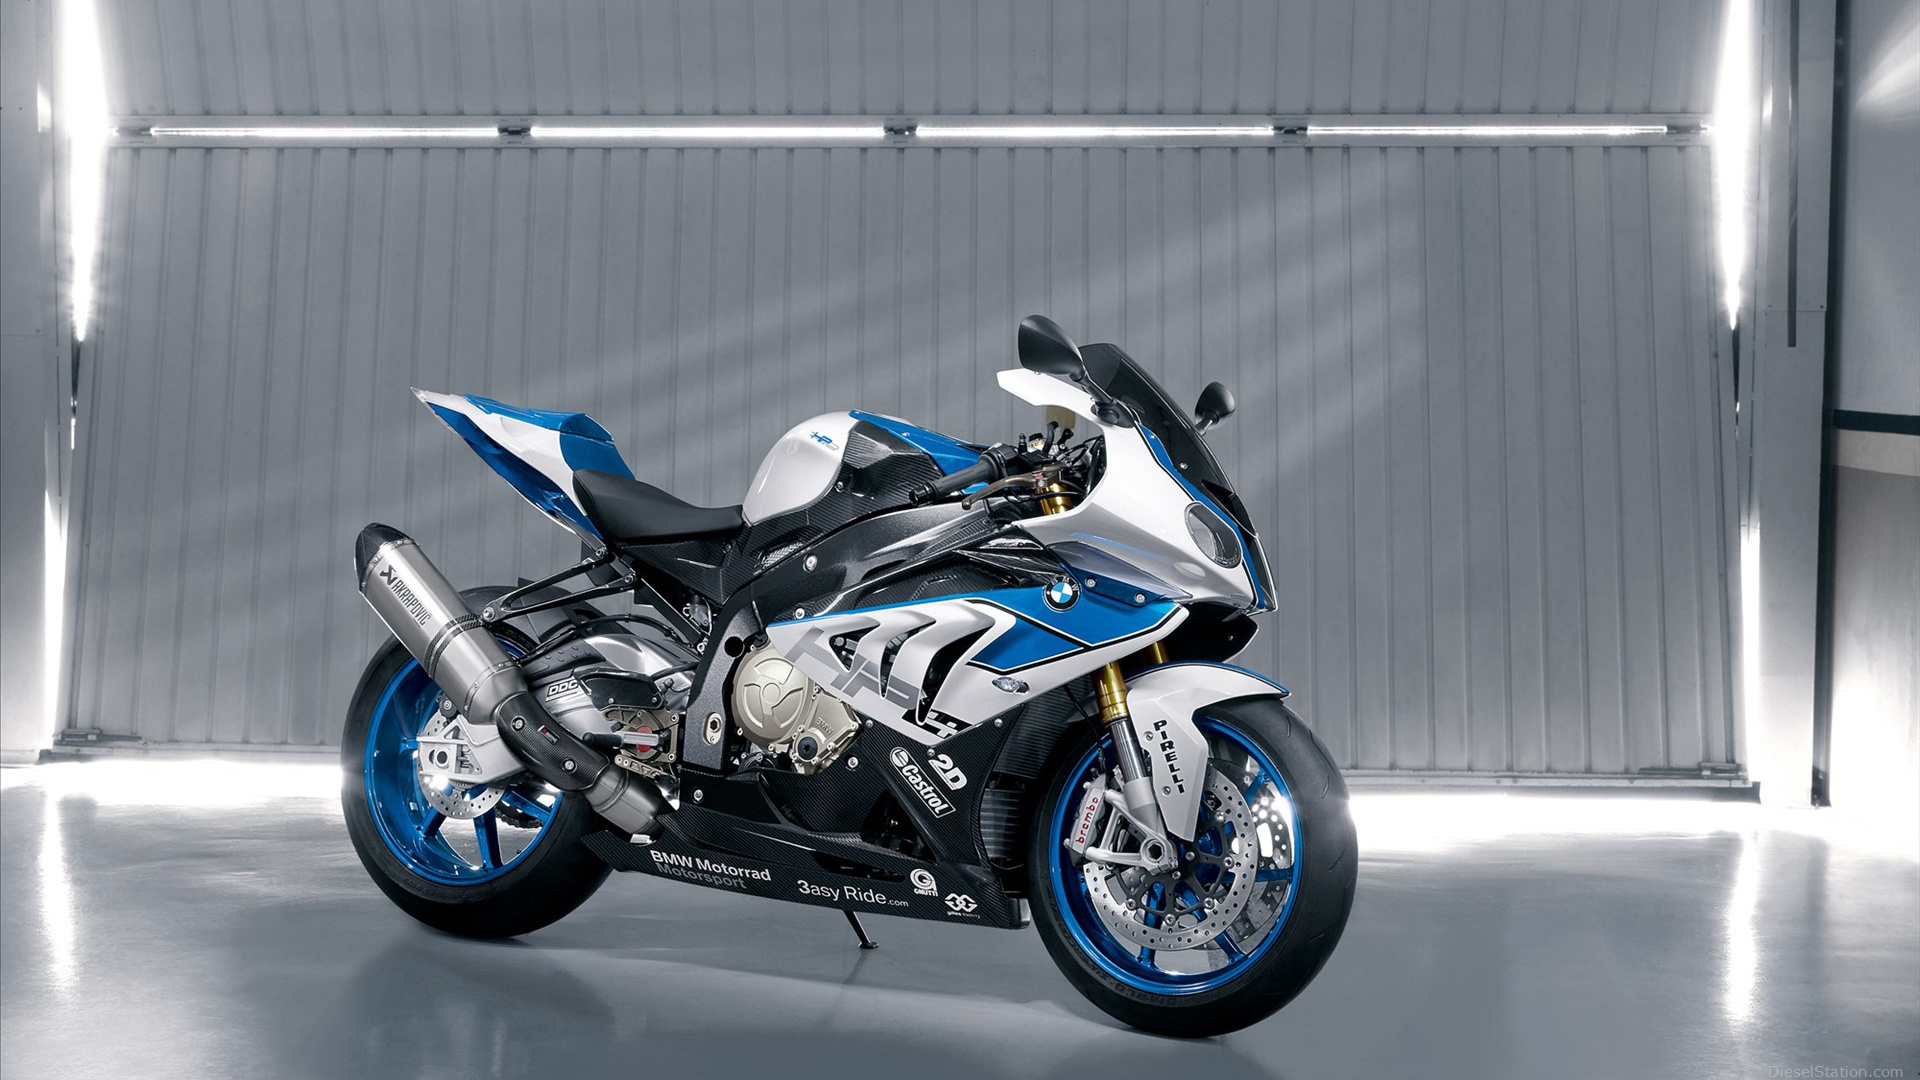 2013 Bmw Hp4 Bike Wallpapers In Jpg Format For Free Download